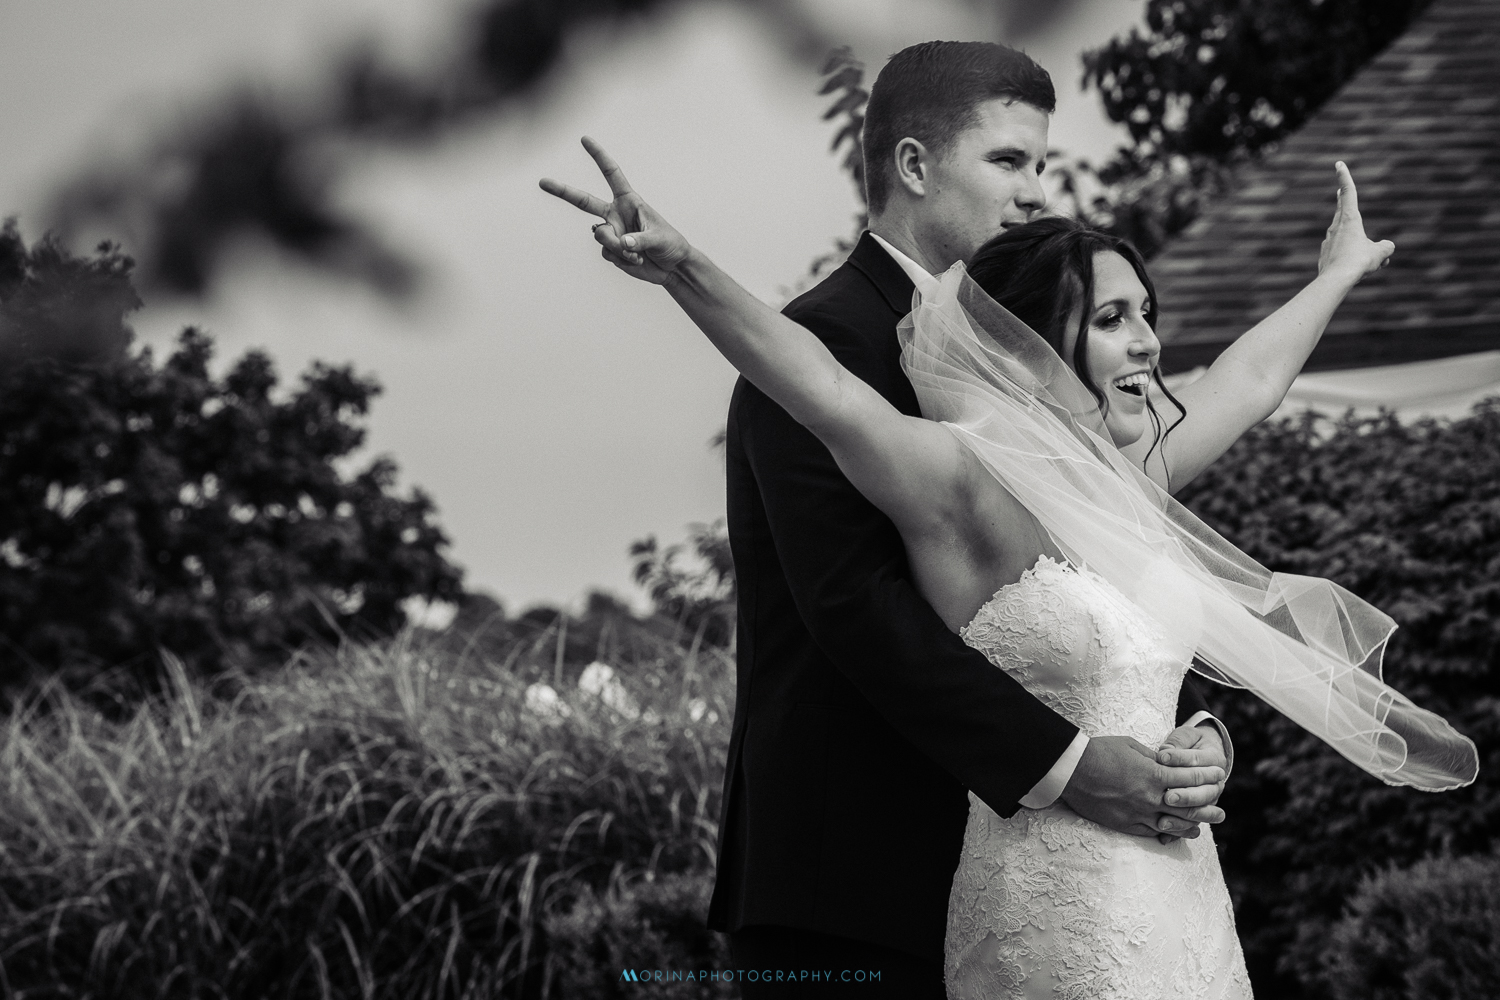 Amanda & Austin wedding at Crystal Point Yacht Club 34.jpg